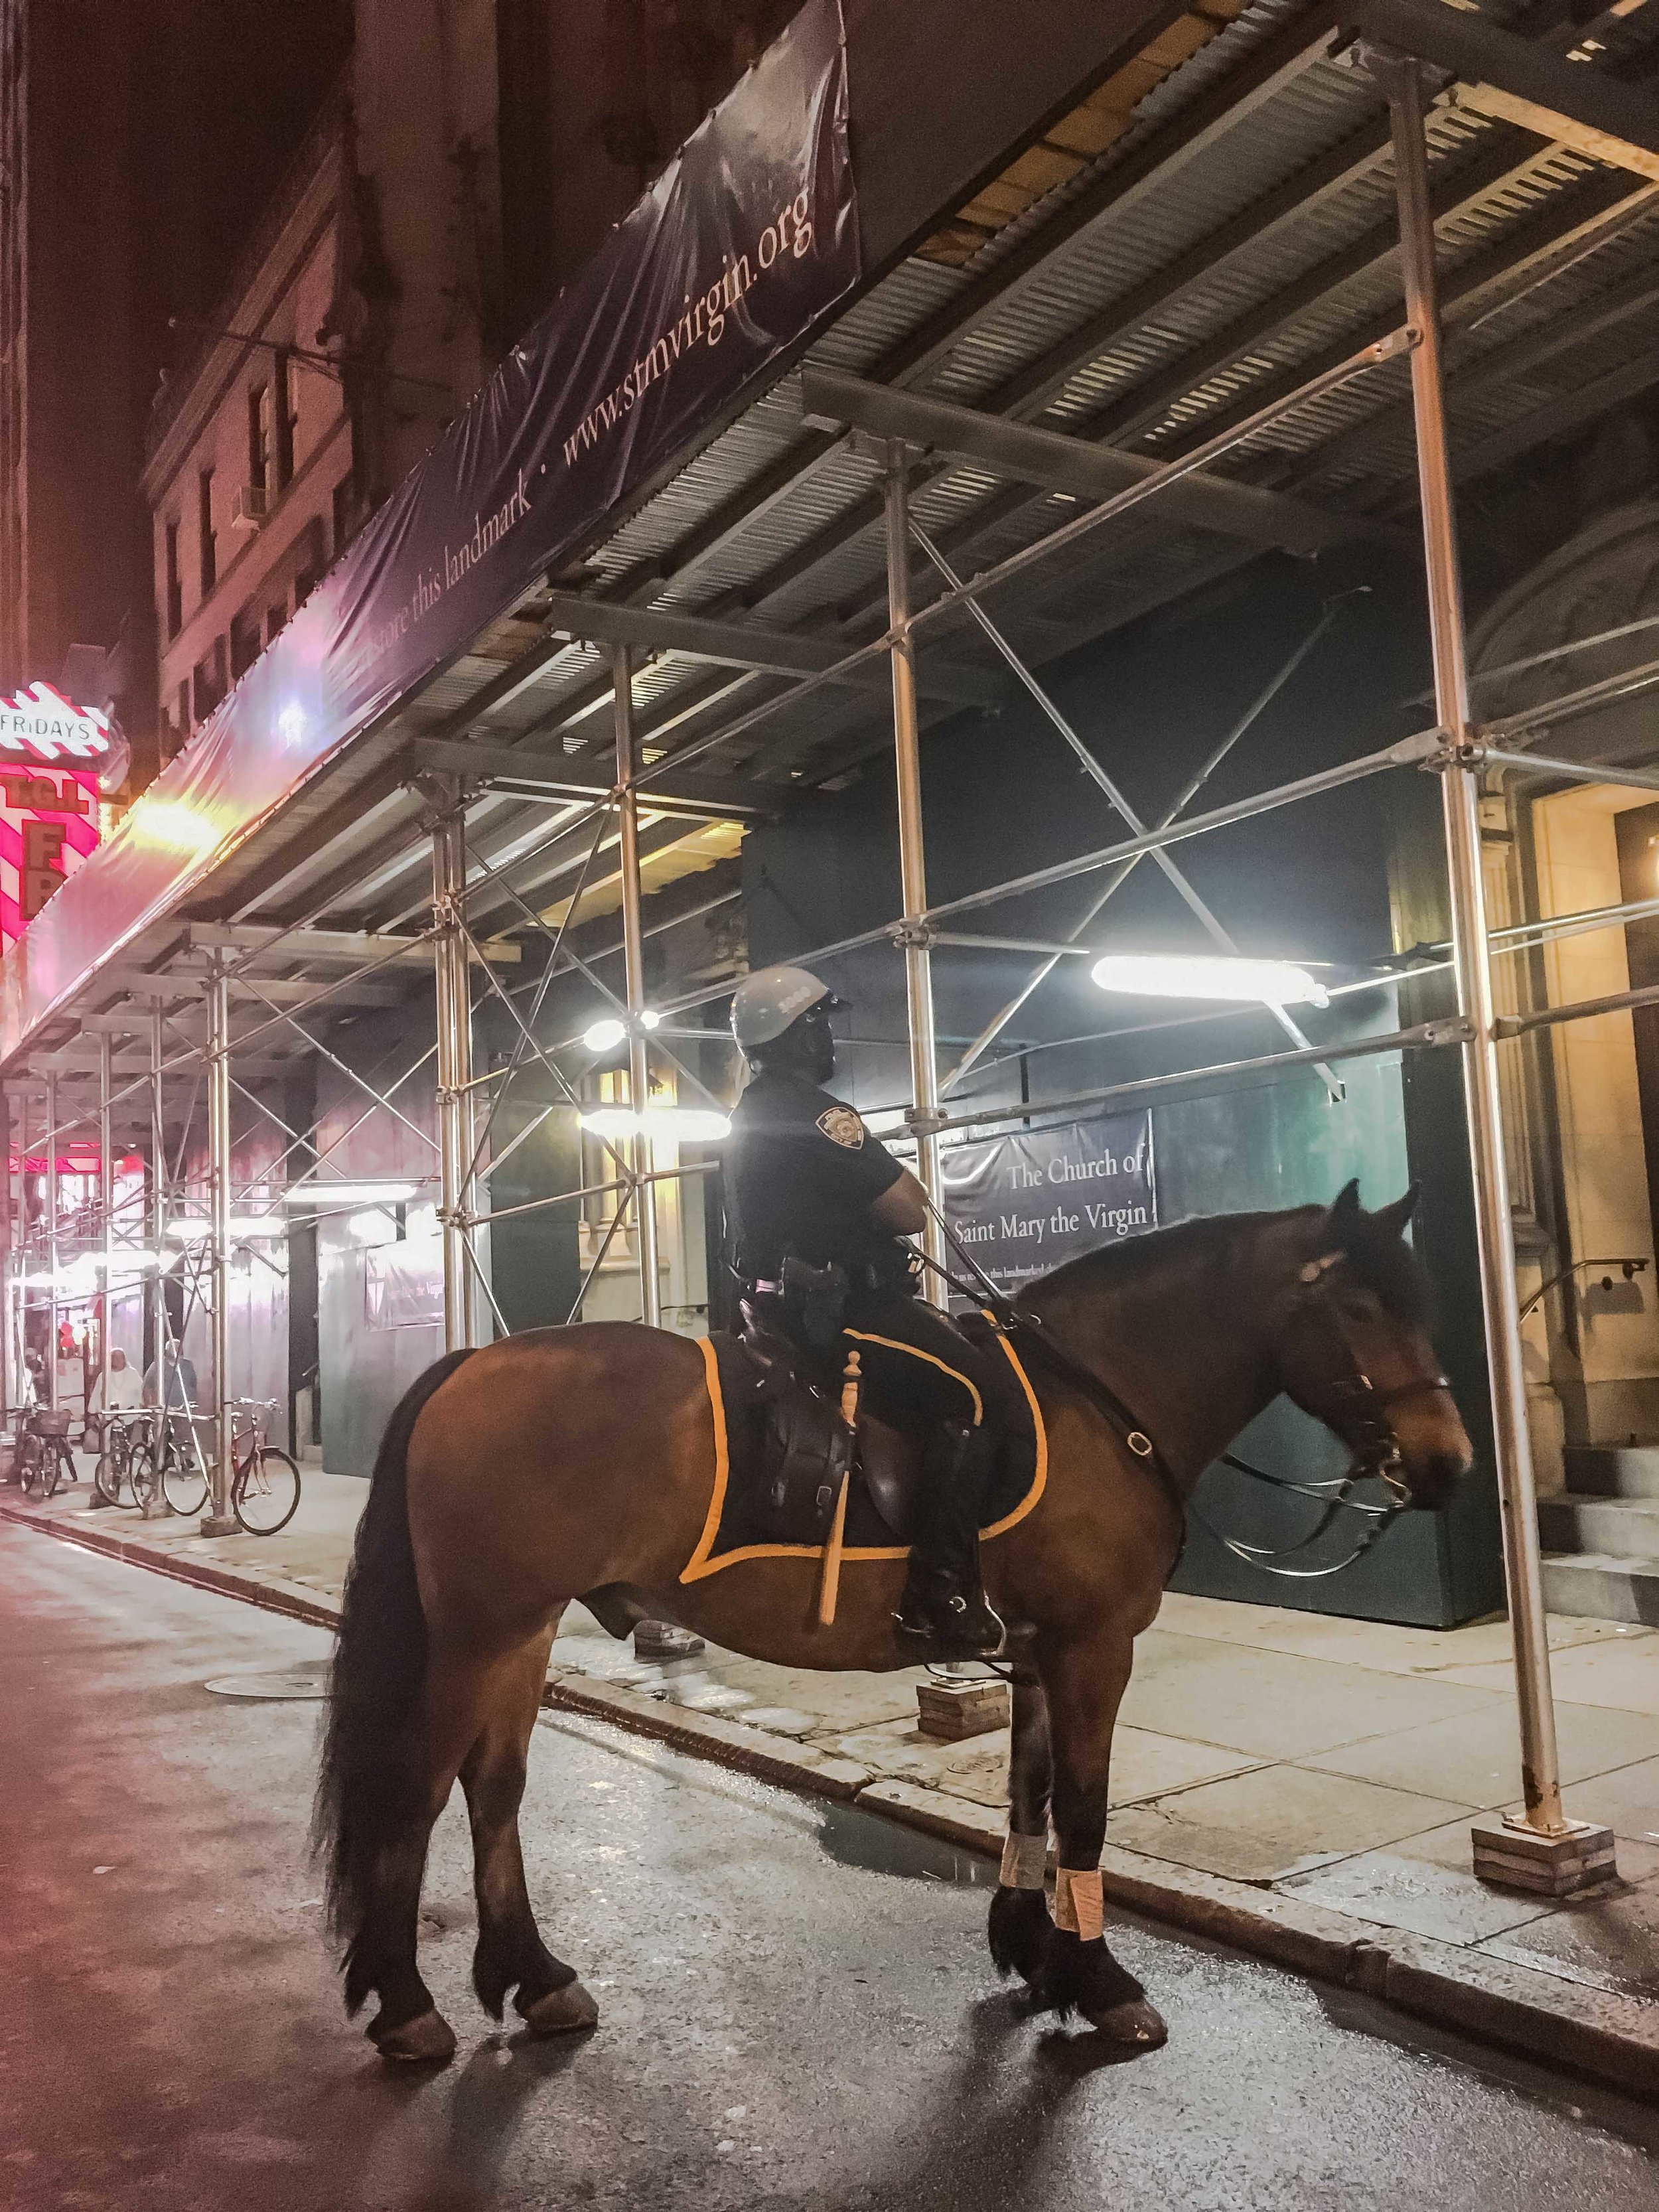 NYPD Mounted Police are very welcome in Times Square.